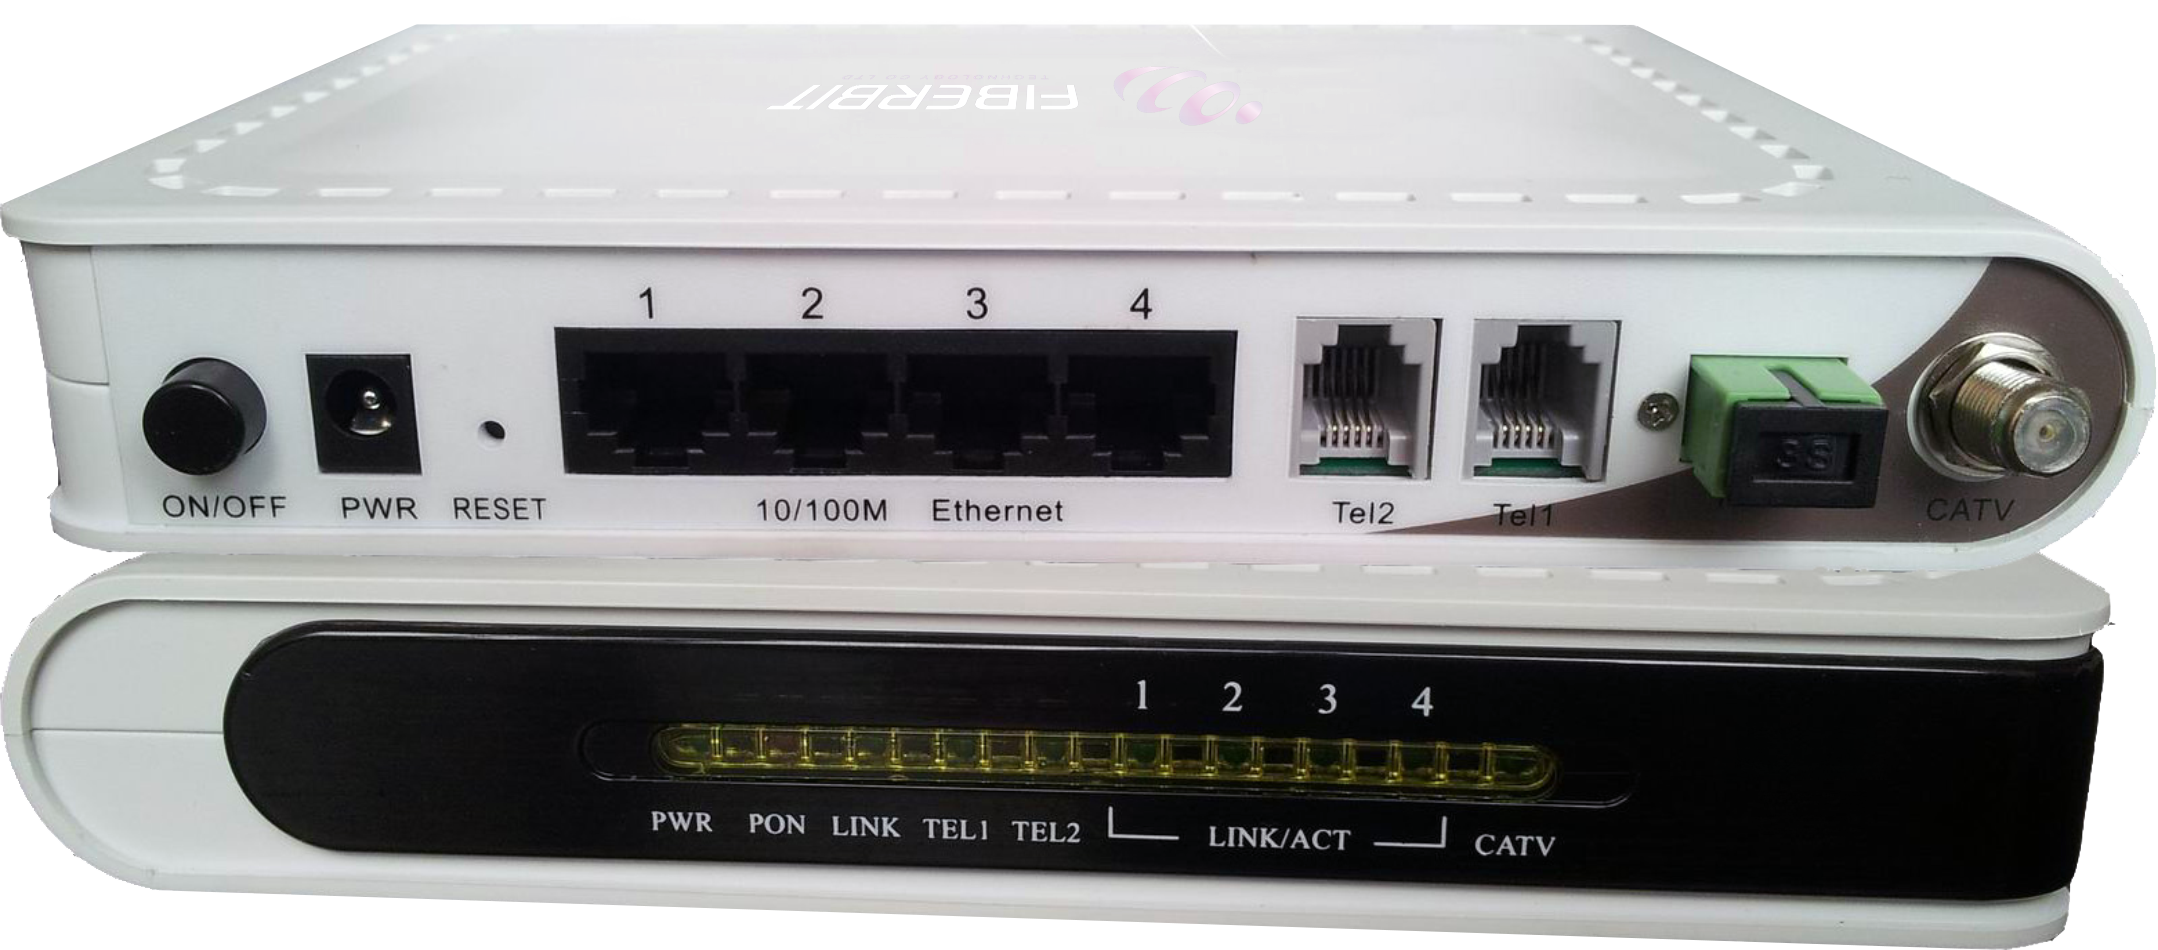 Triple Play ONU for FTTH – 4 Ethernet 2 Voice FXS and 1 CATV ports